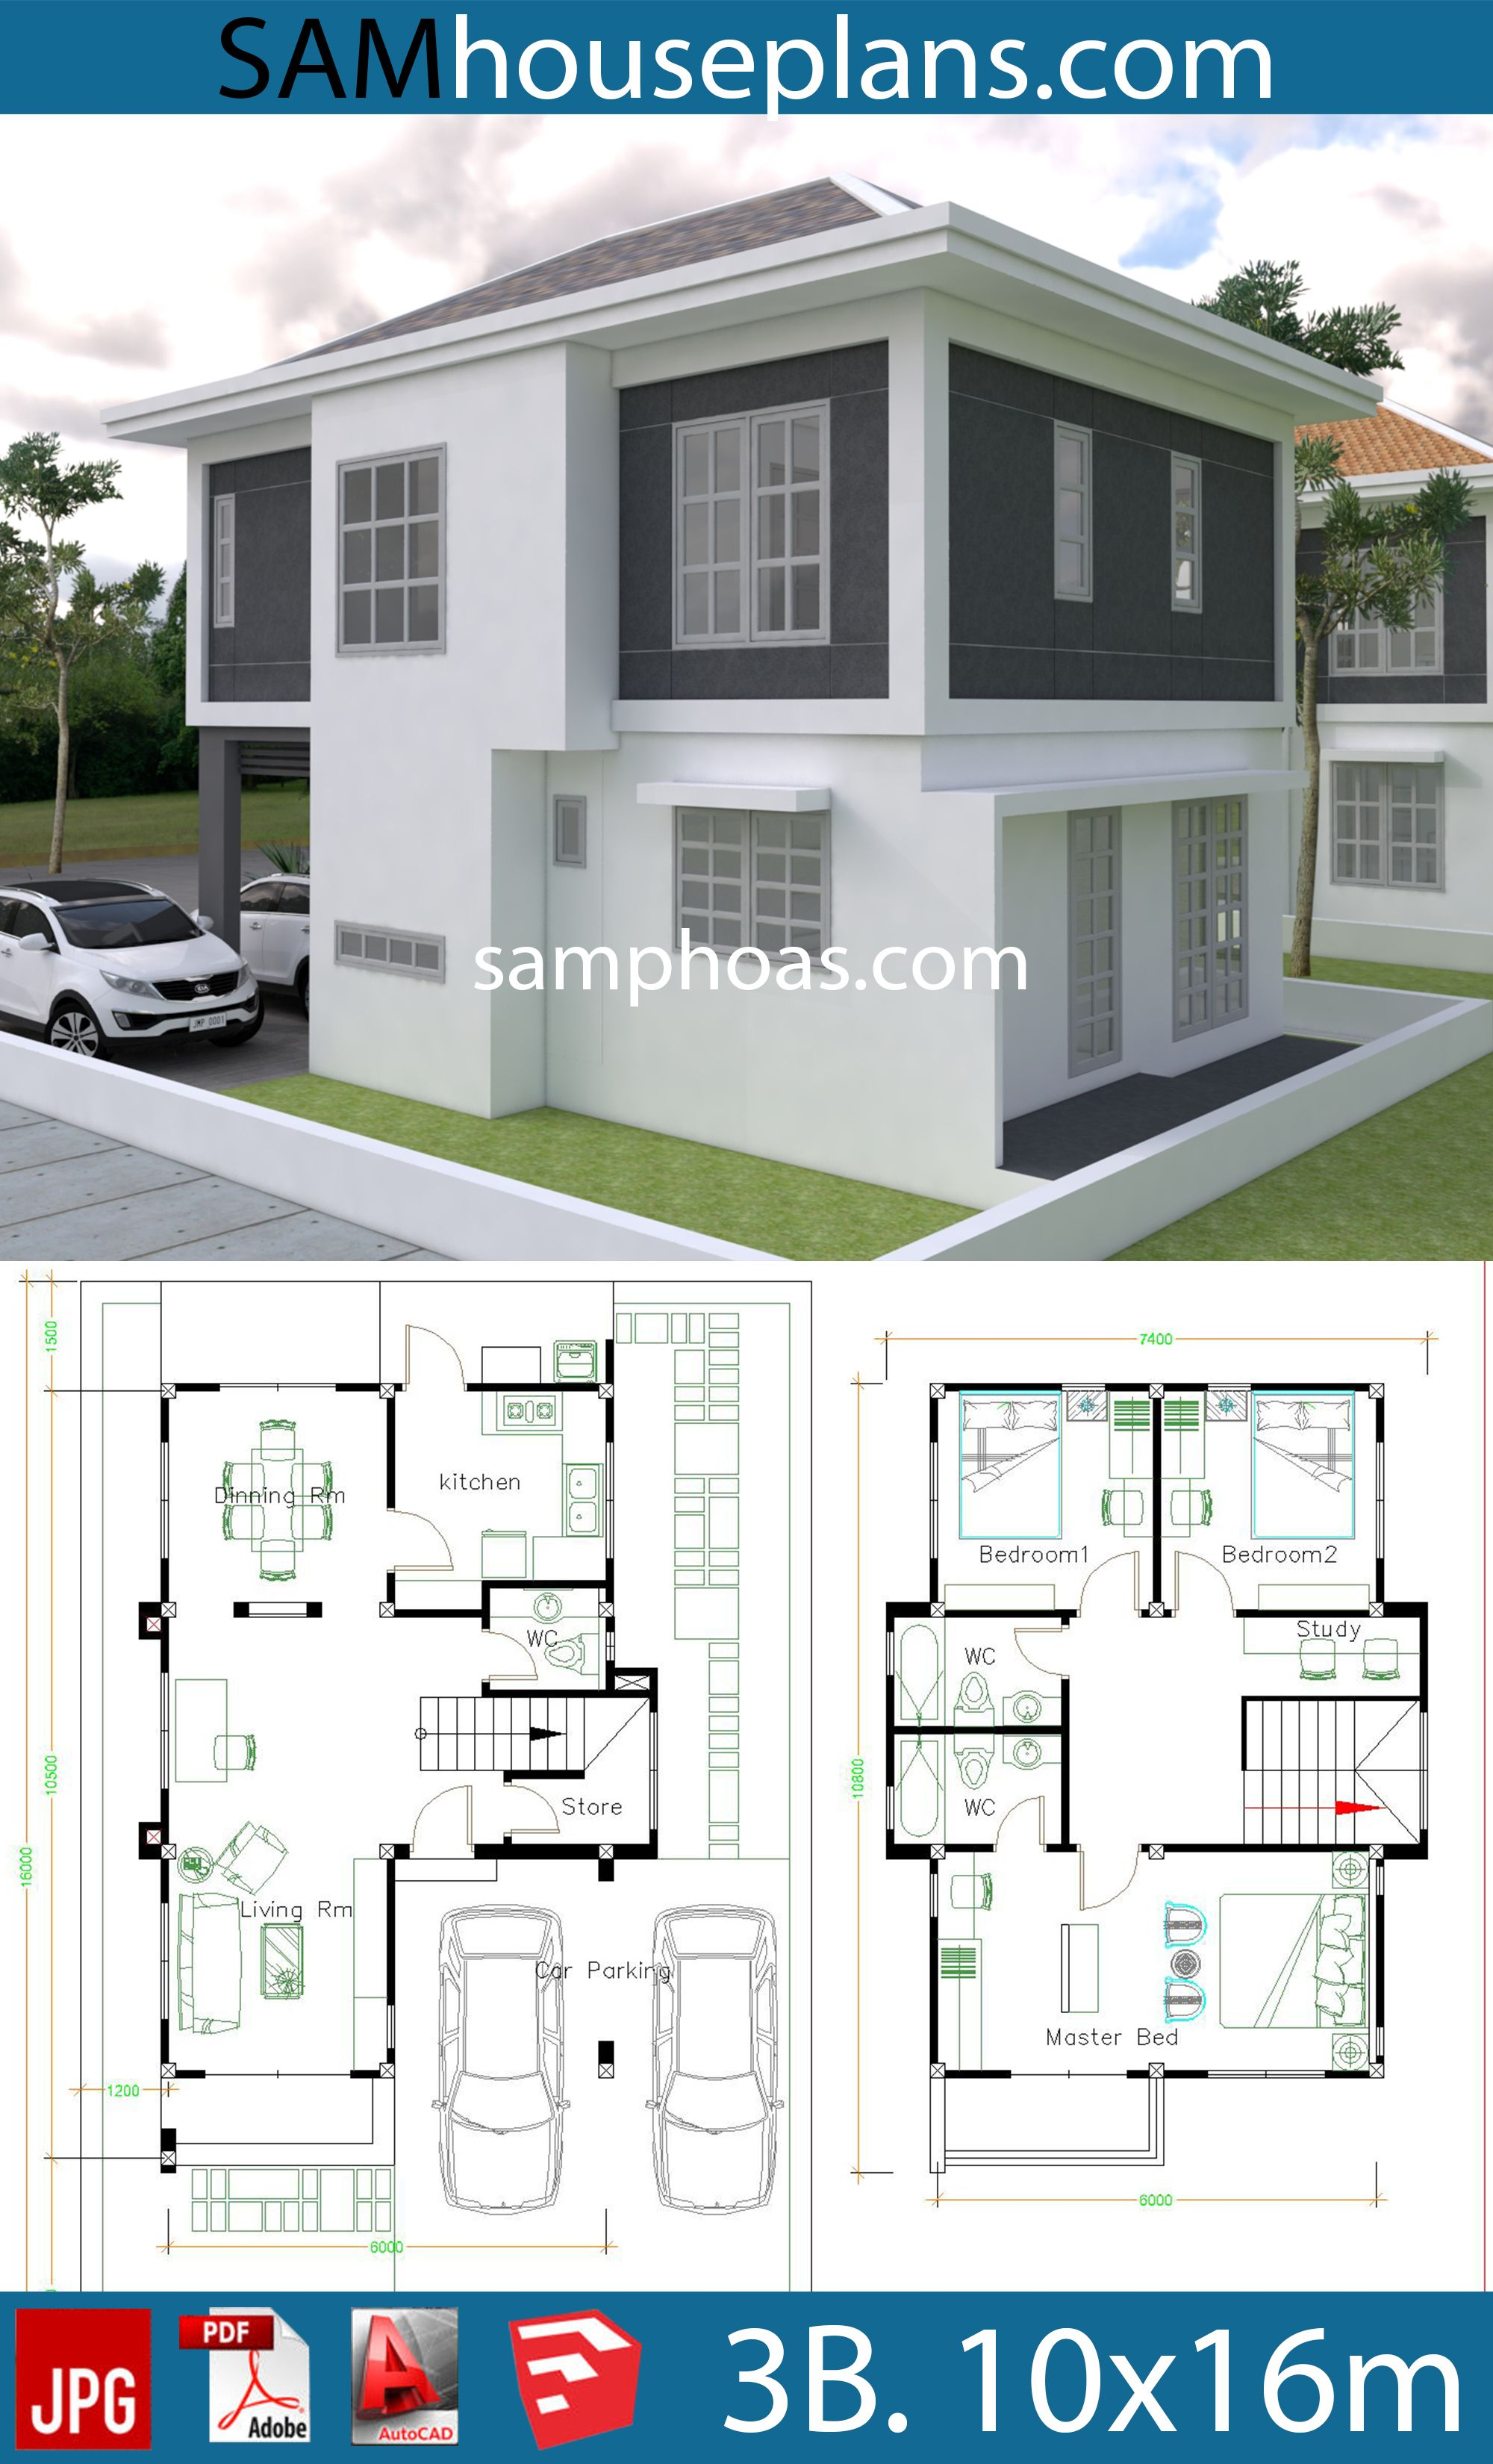 House Plans 10x16m With 3 Bedrooms House Plans Free Downloads Architectural Design House Plans House Plans House Layout Plans